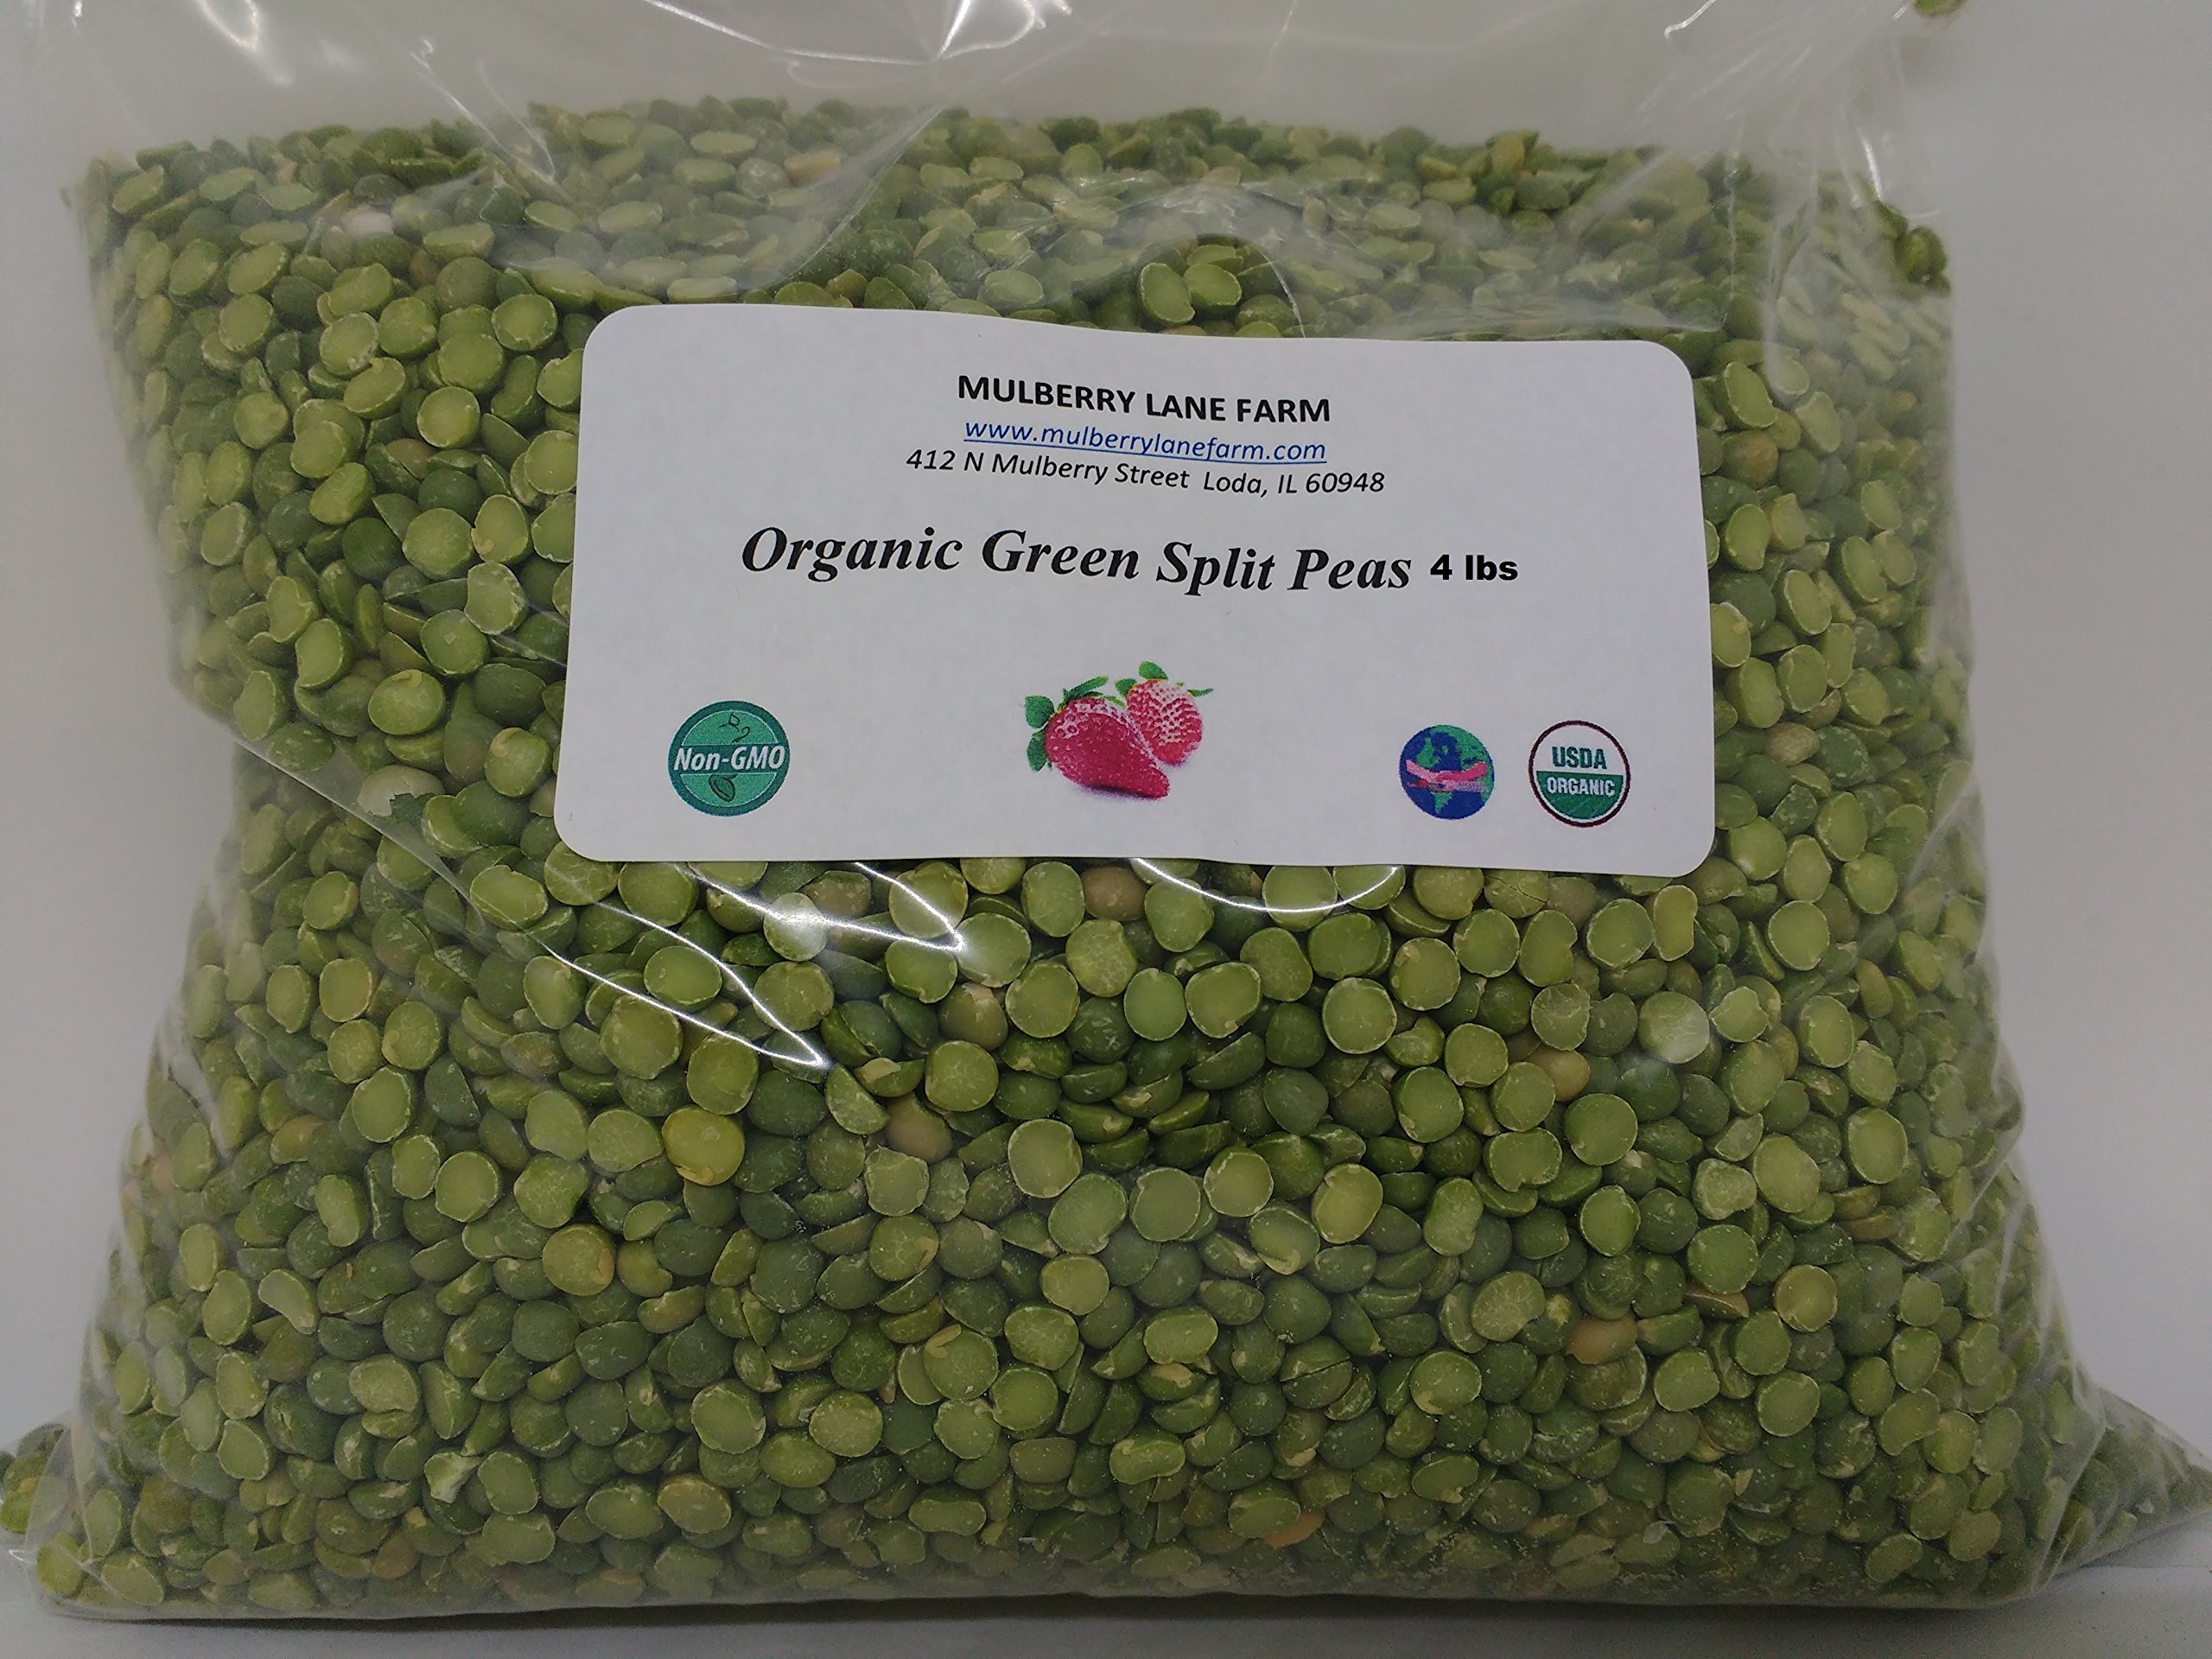 Green Split Peas Green 4 Pounds (Four lbs) USDA Certified Organic Non-GMO BULK by Mulberry Lane Farms